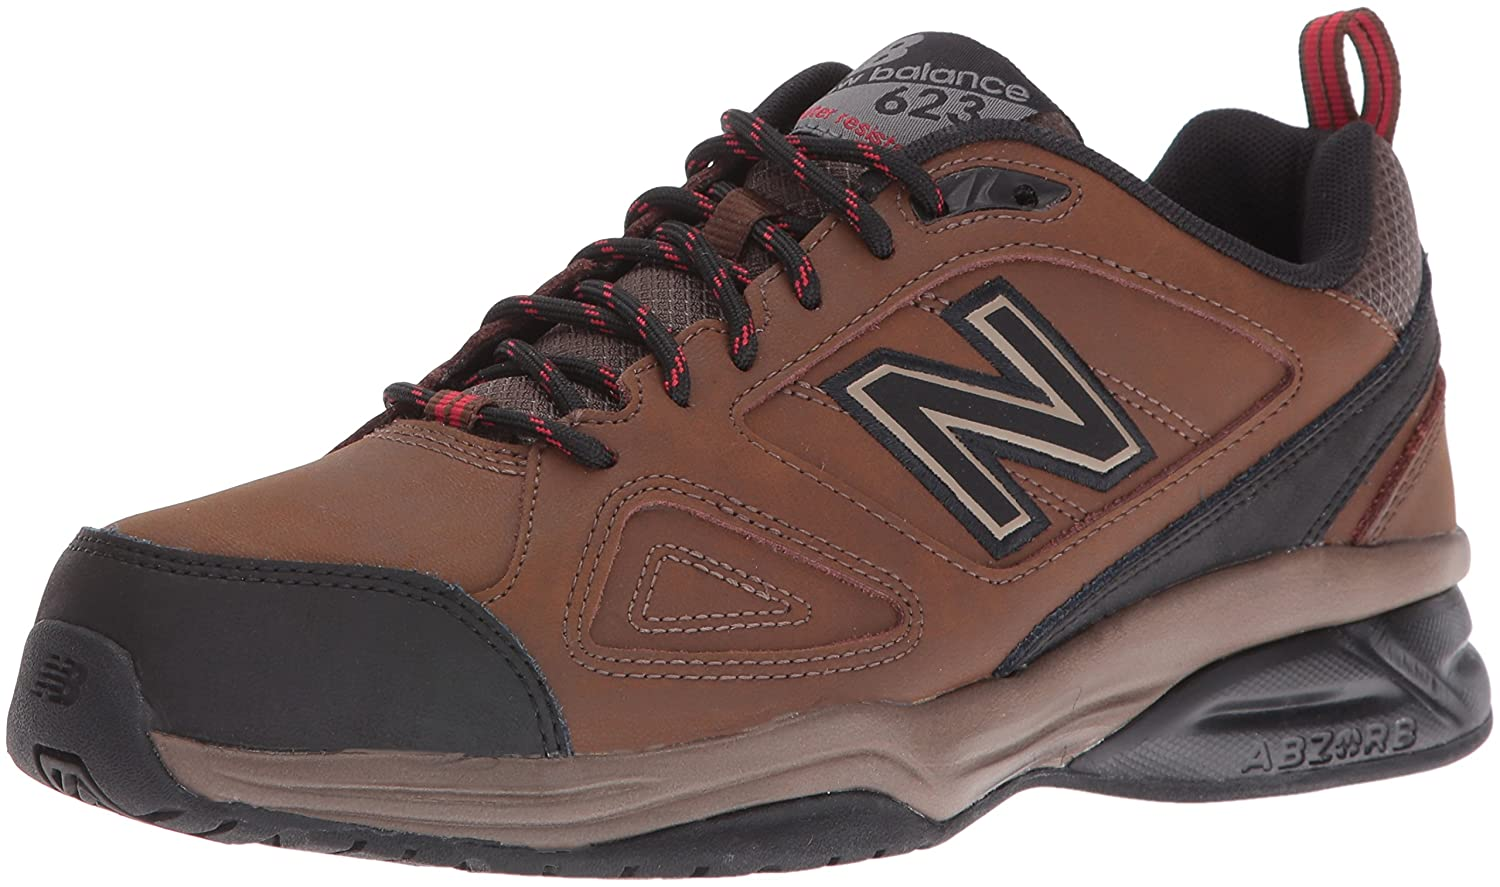 New Balance Men's 623 v3 Leather Water Resistant Cross Trainers NB2-MX623V3-MNS